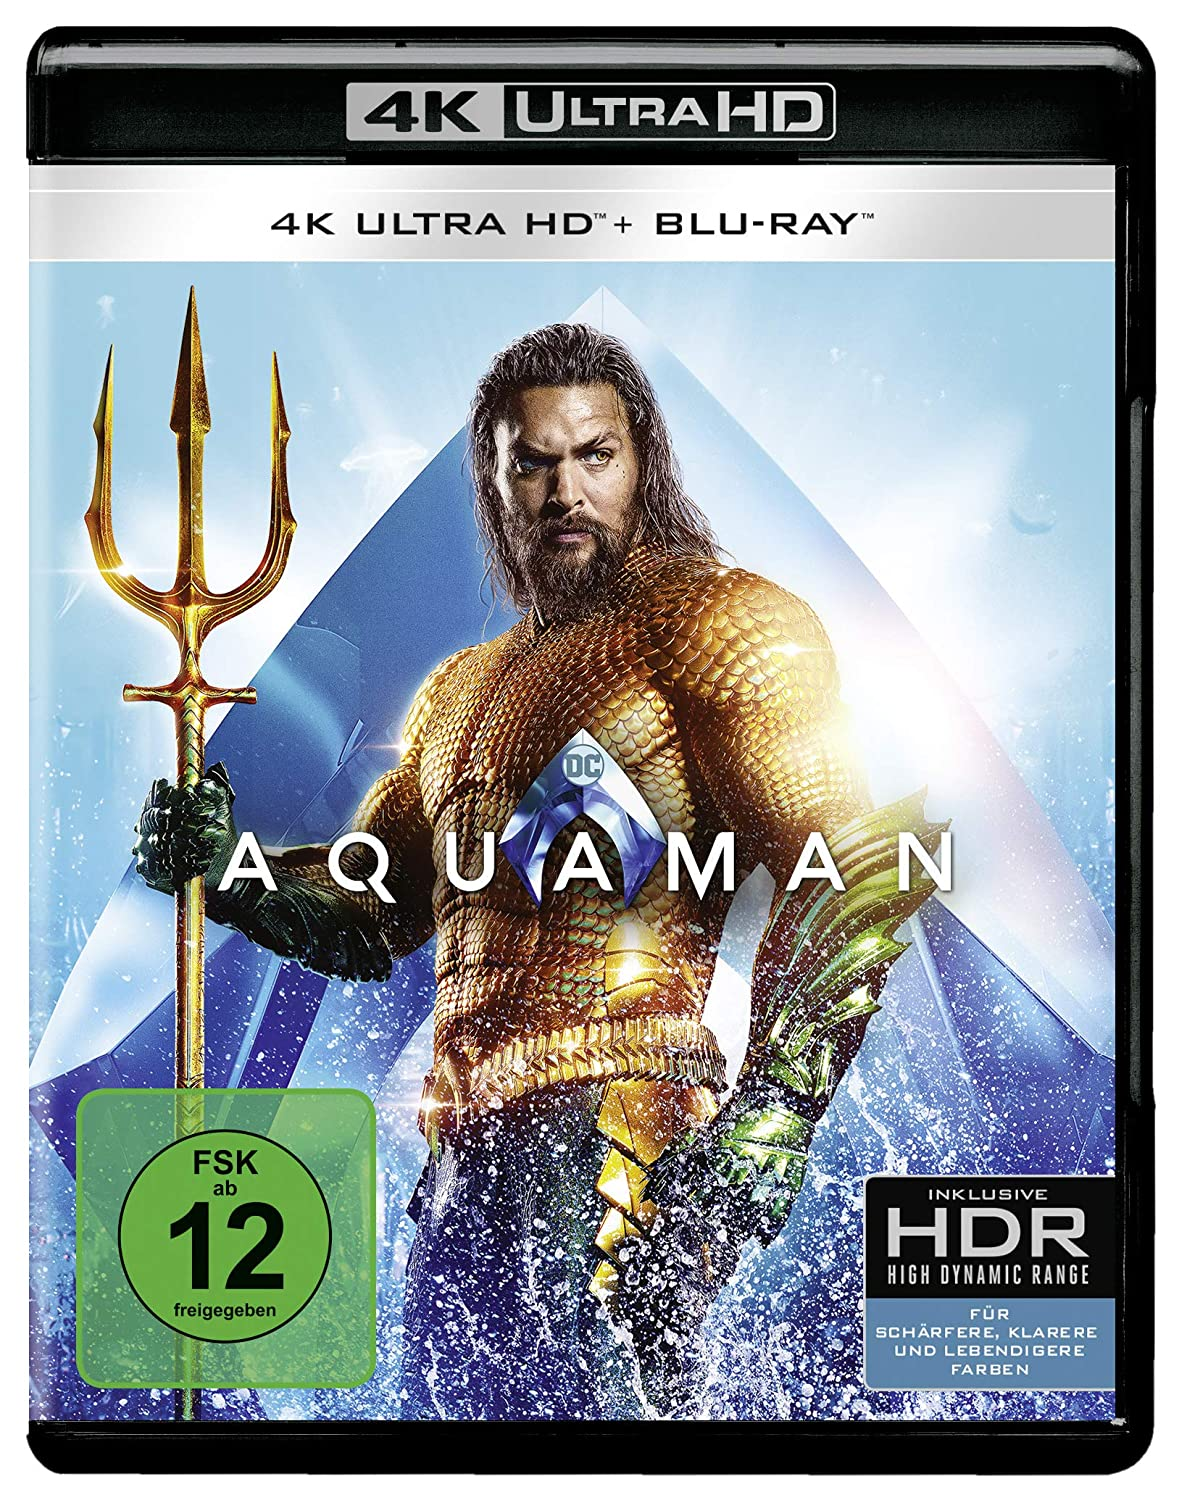 Aquaman - Ultra HD Blu-ray [4k + Blu-ray Disc]